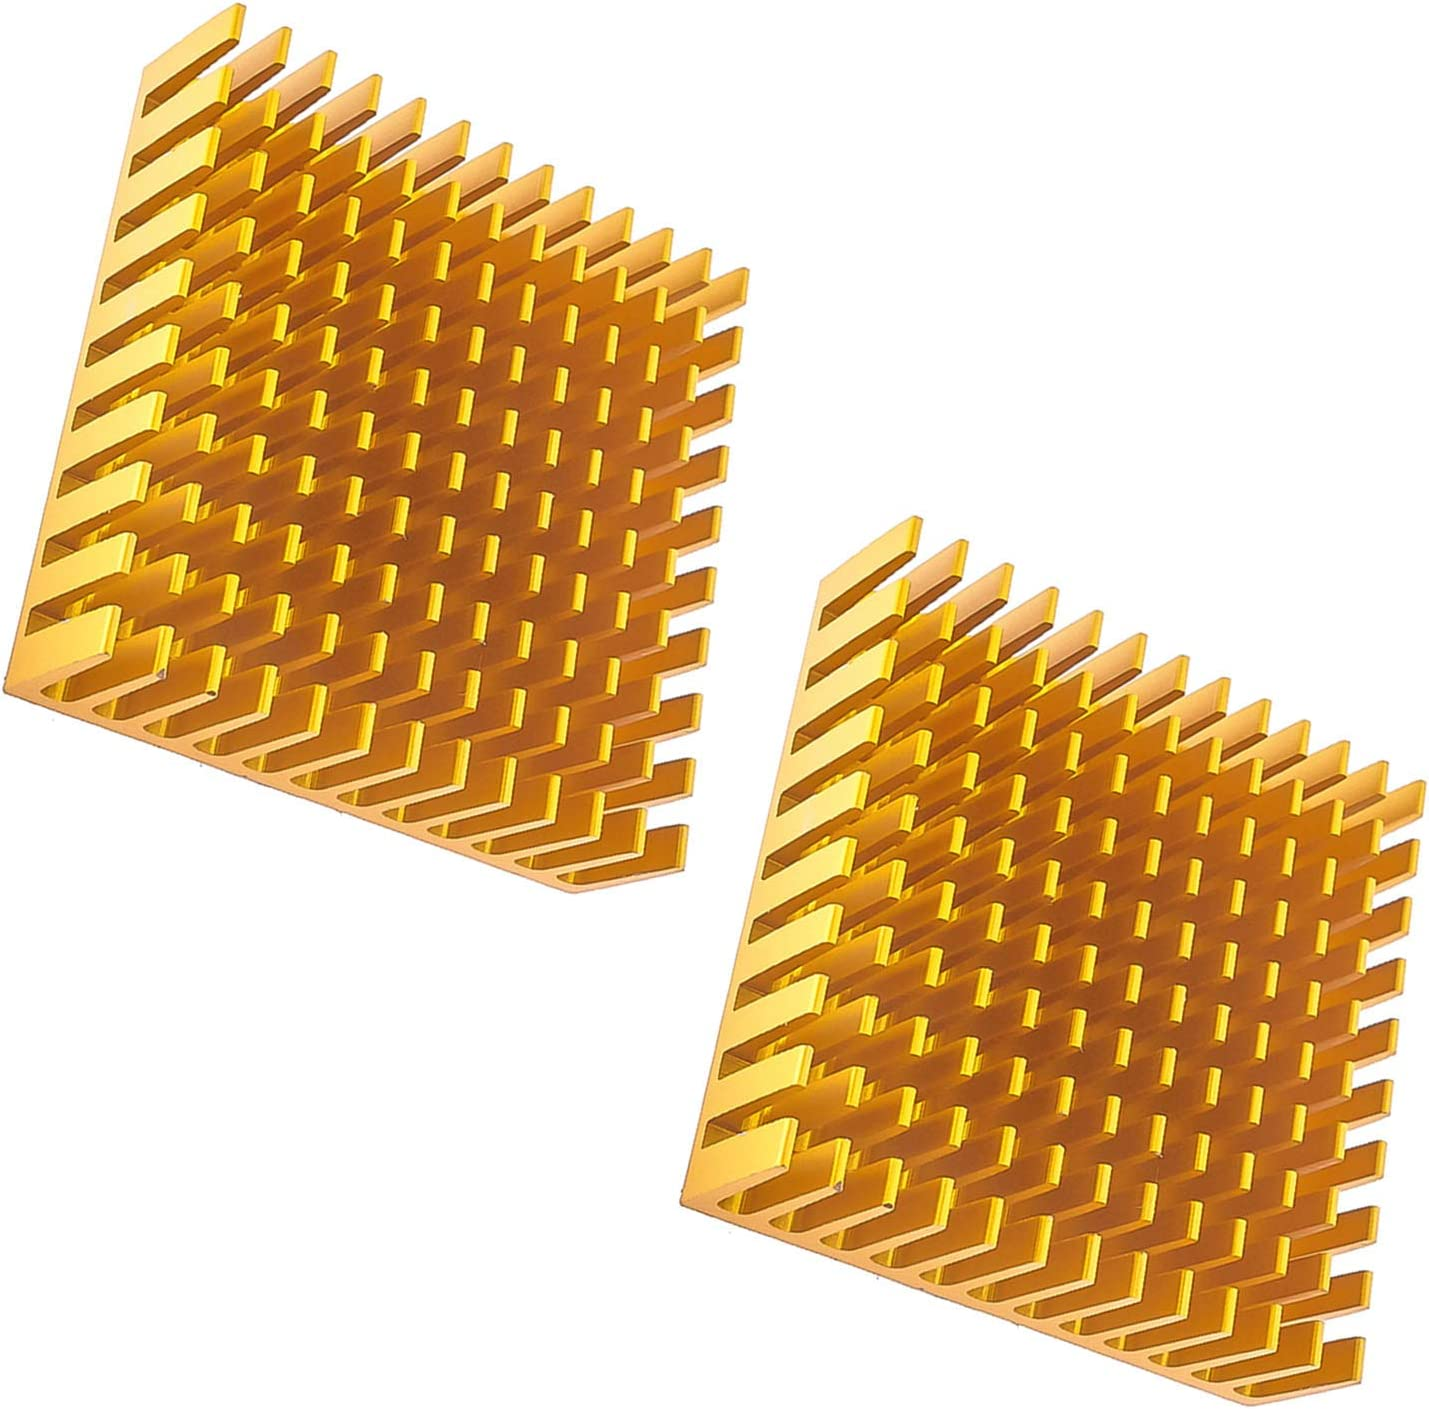 RuiLing 2-Pack 40x40x11mm Aluminum Cooling Heatsink Square Golden CPU Heat Sink Cooler Fin with 3M Silicone Based Thermal Pad Adhesive Stickers